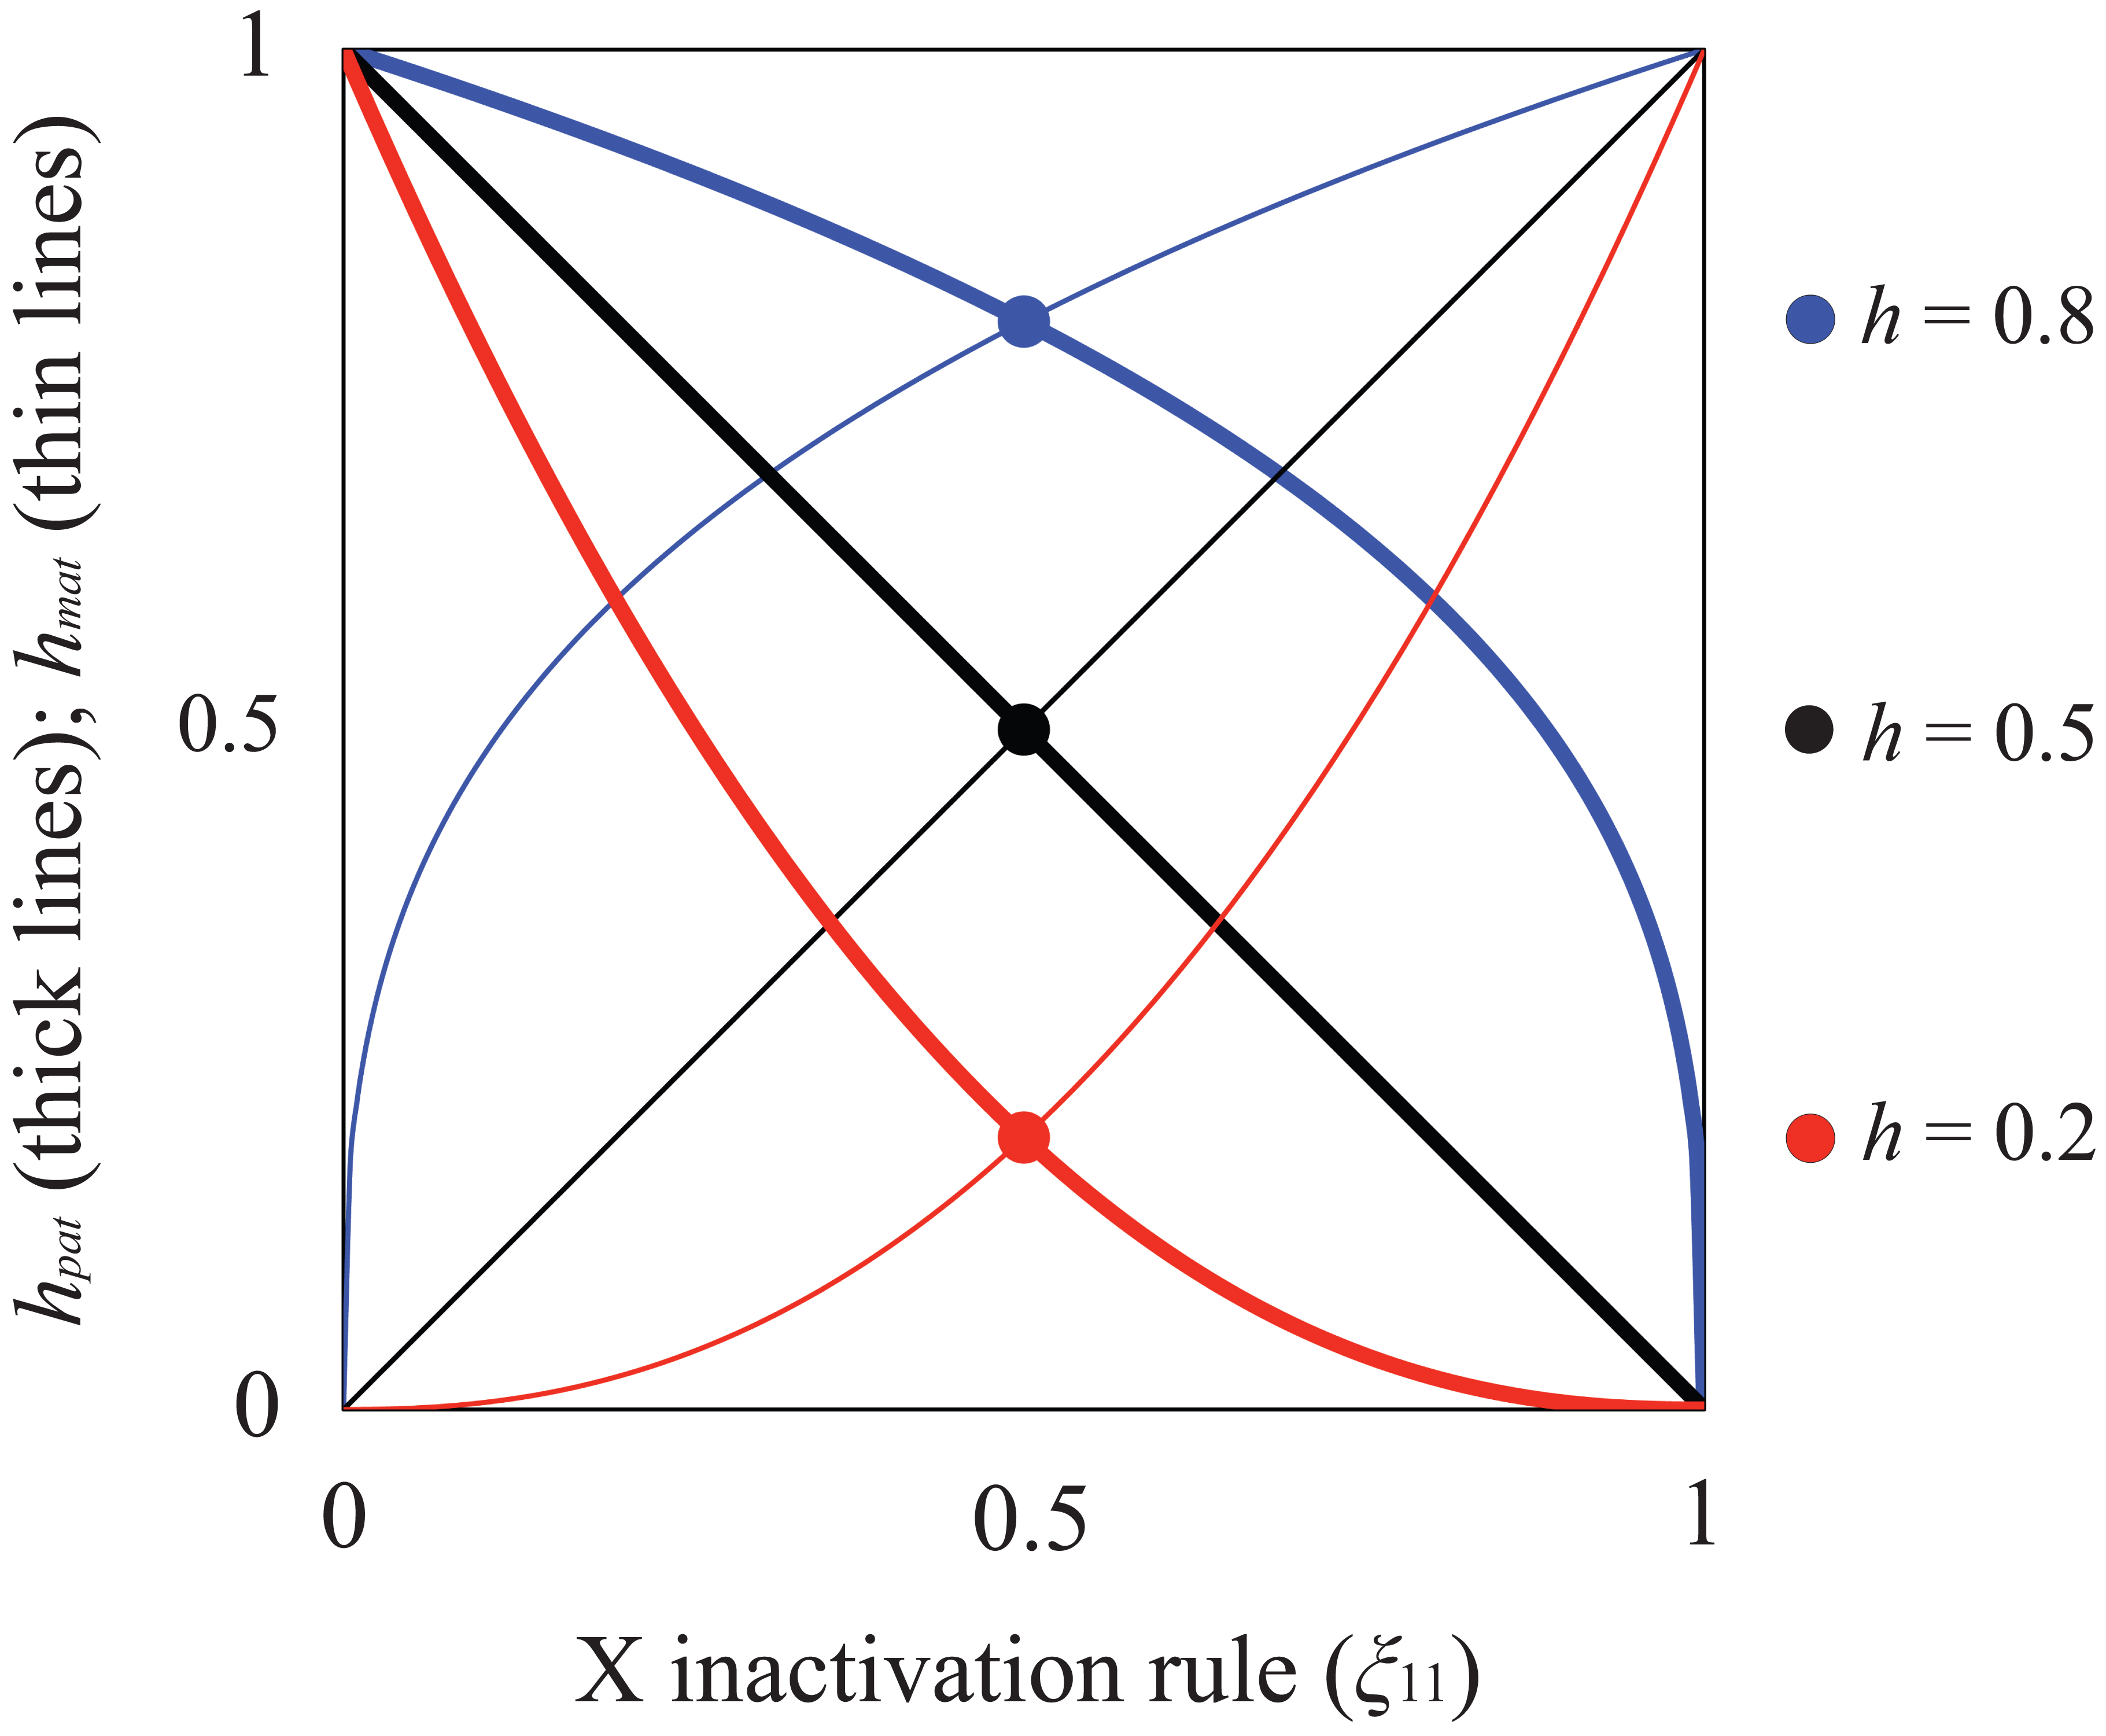 """Relationship between X inactivation rule and parent-of-origin dominance coefficients (<b><i>h<sub>mat</sub></i></b><b>, </b><b><i>h<sub>pat</sub></i></b><b>; see </b><em class=""""ref""""><b>Table 1</b></em><b>).</b>"""